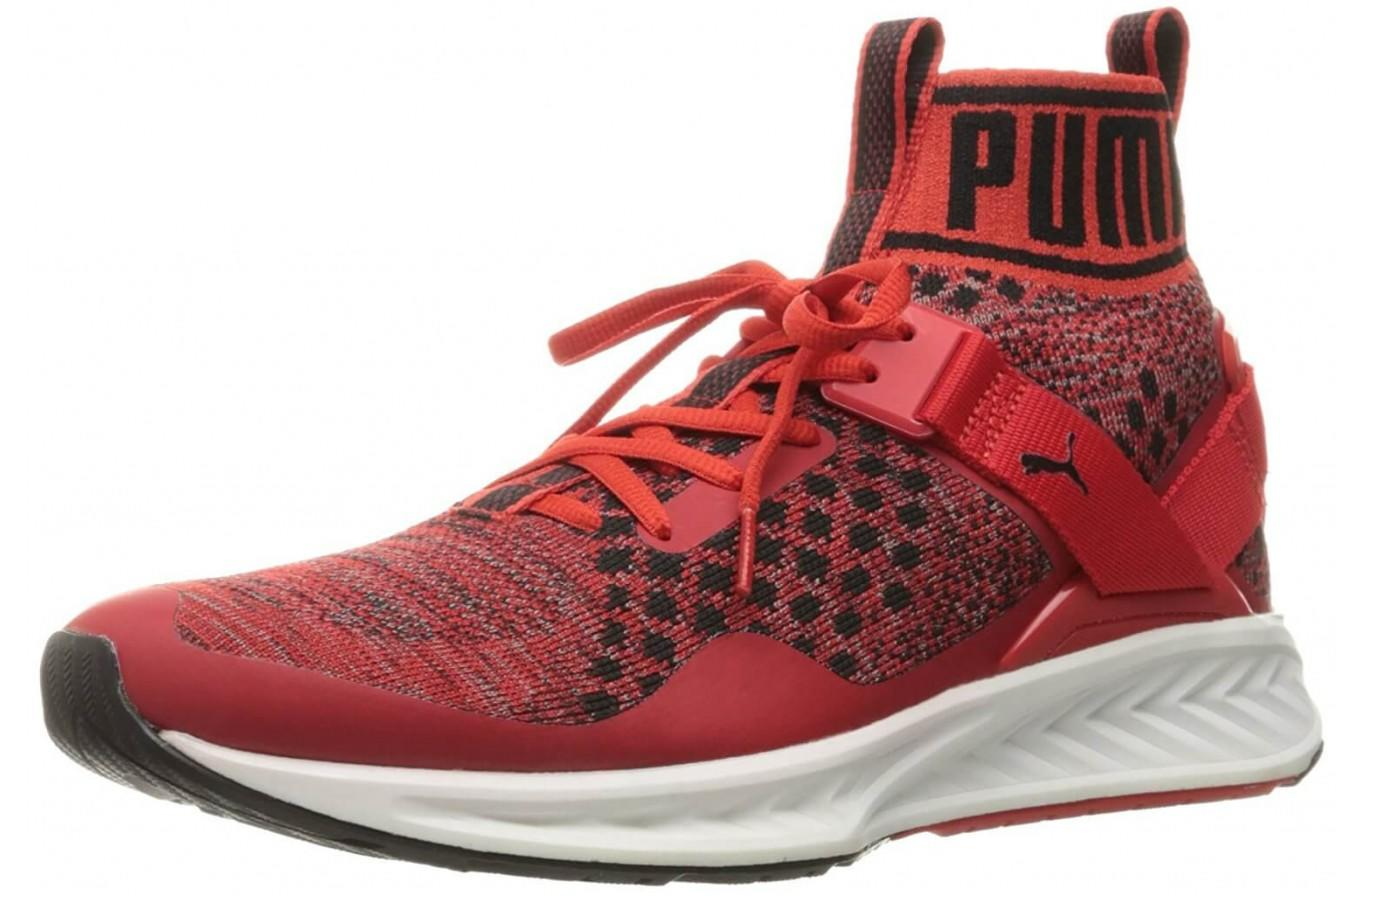 the Puma Ignite evoKnit is a stylish high top running shoe